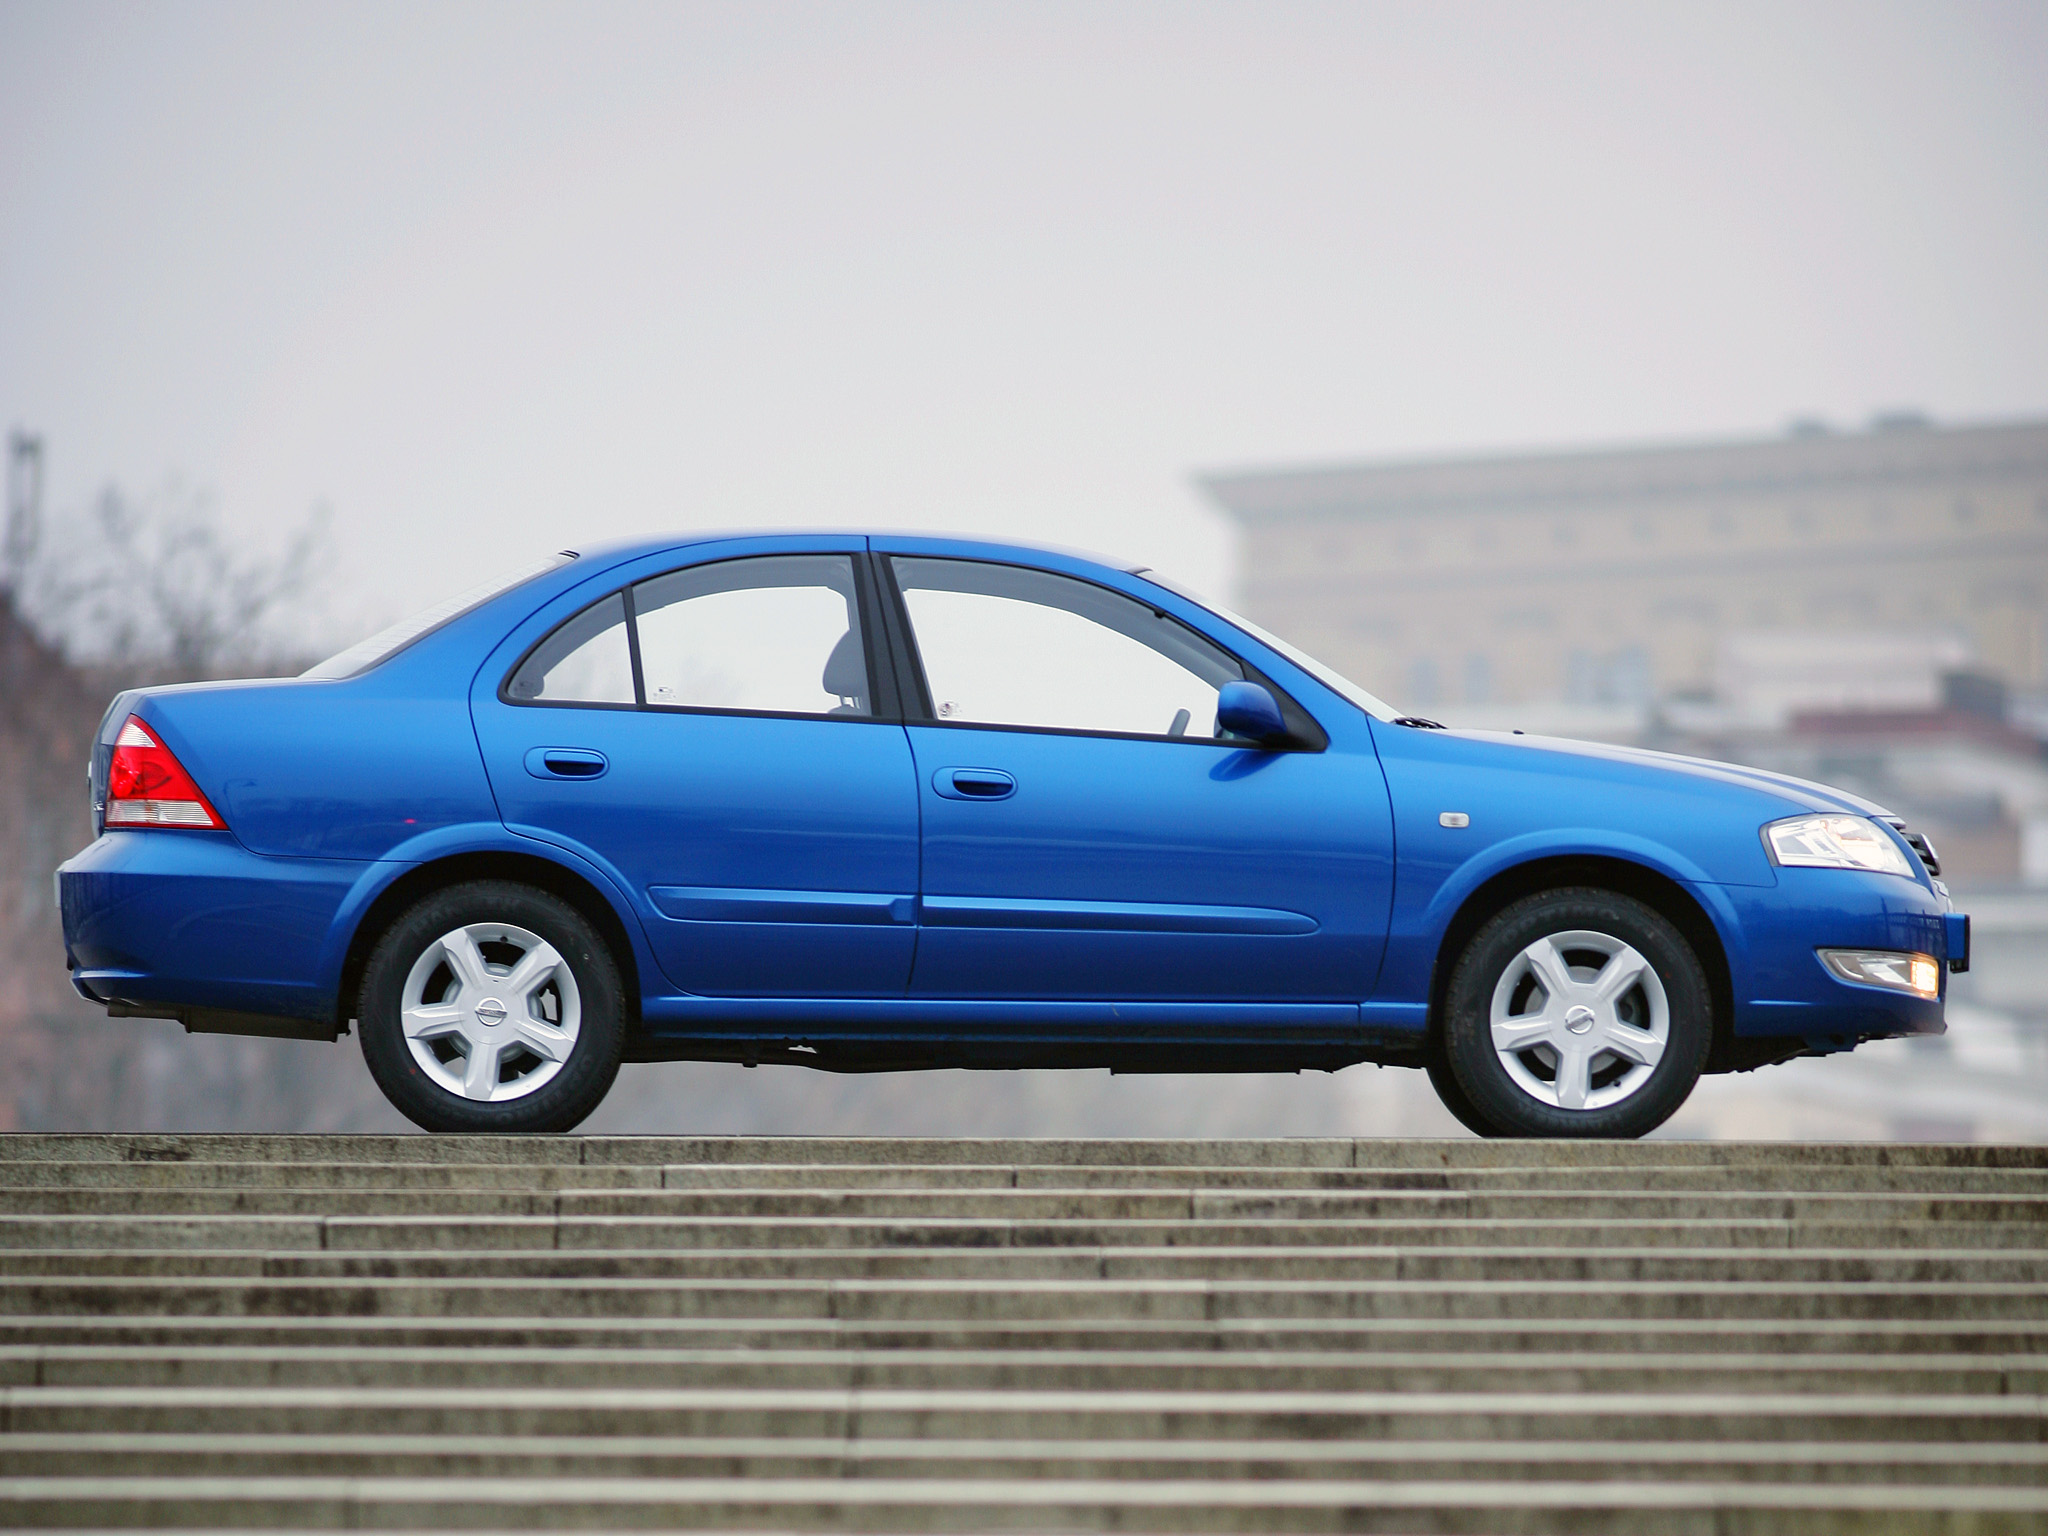 2013 Nissan Almera classic (b10)   pictures, information and specs